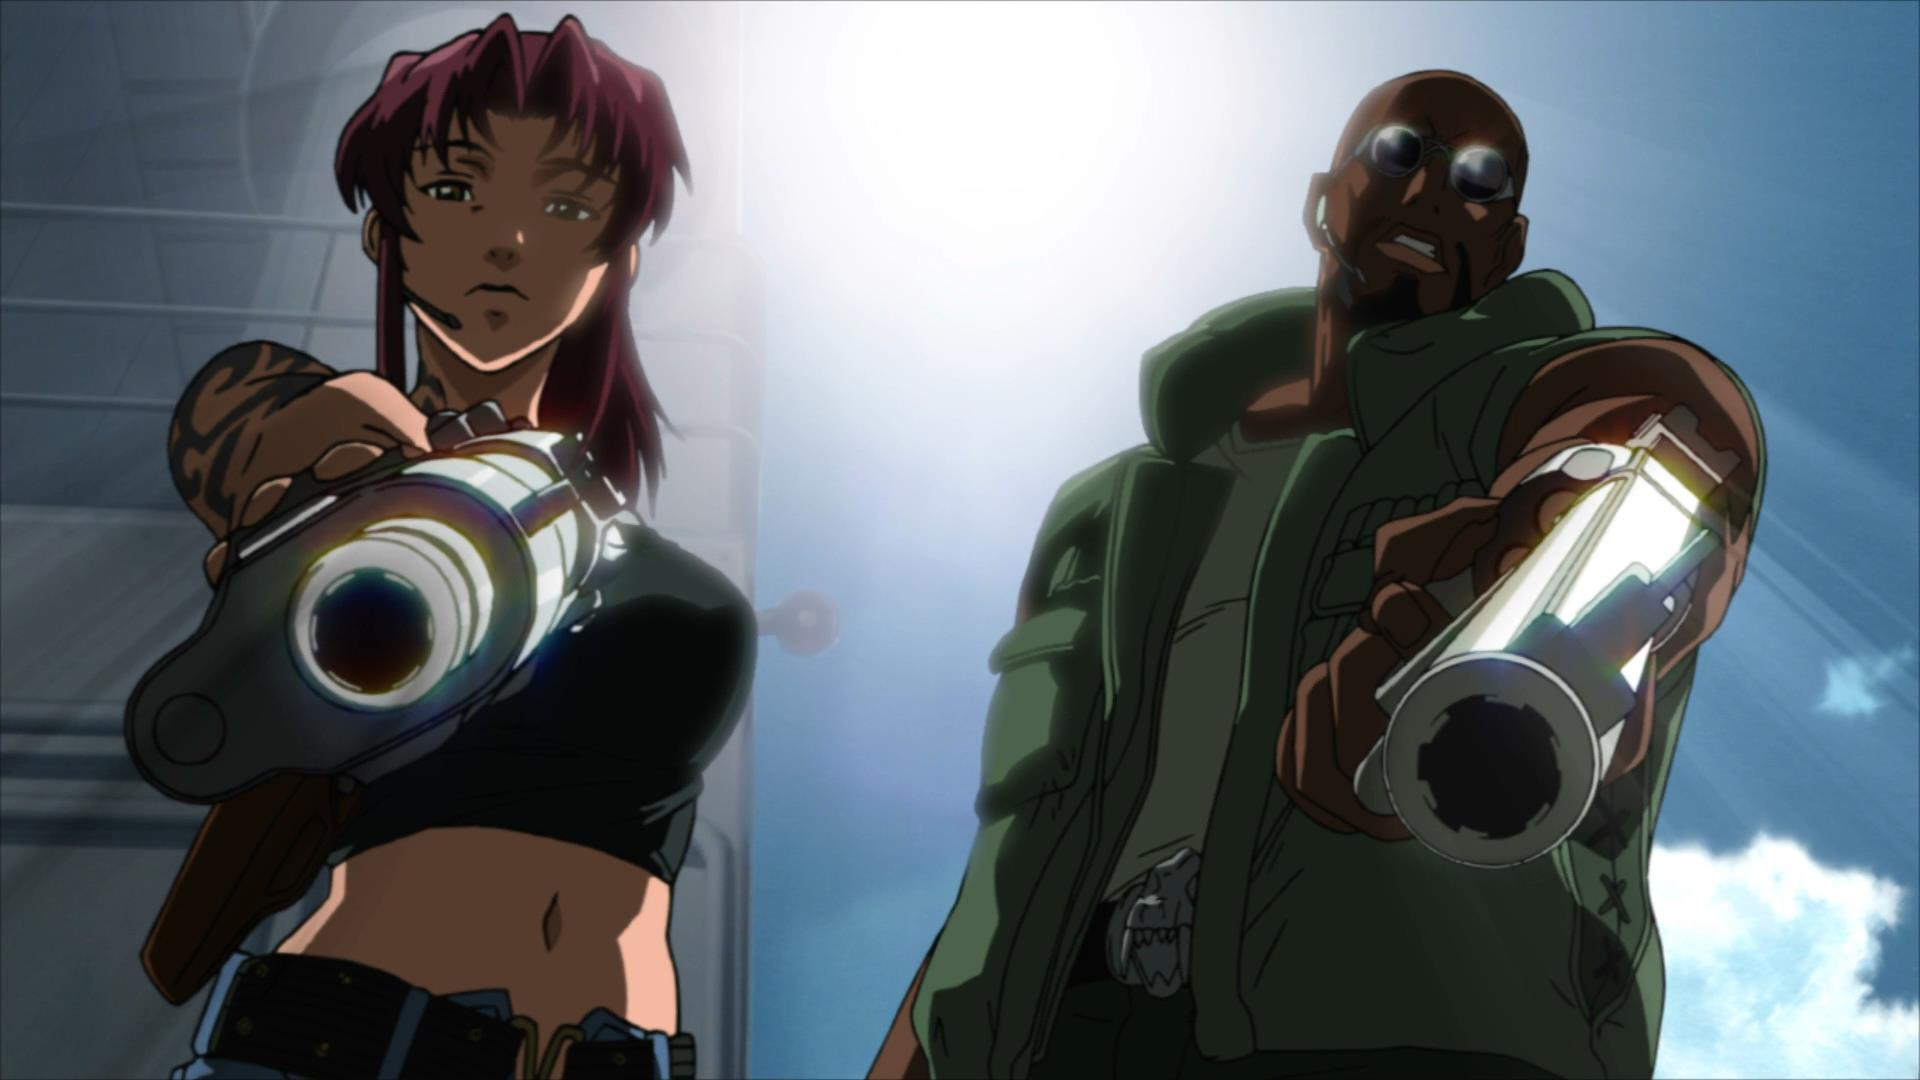 Black Lagoon, Anime, manga, anime streaming showcase, A.S.S., Summer of A.S.S., #SummerofAss, ass, Funimation, Geneon,Rei Hiroe